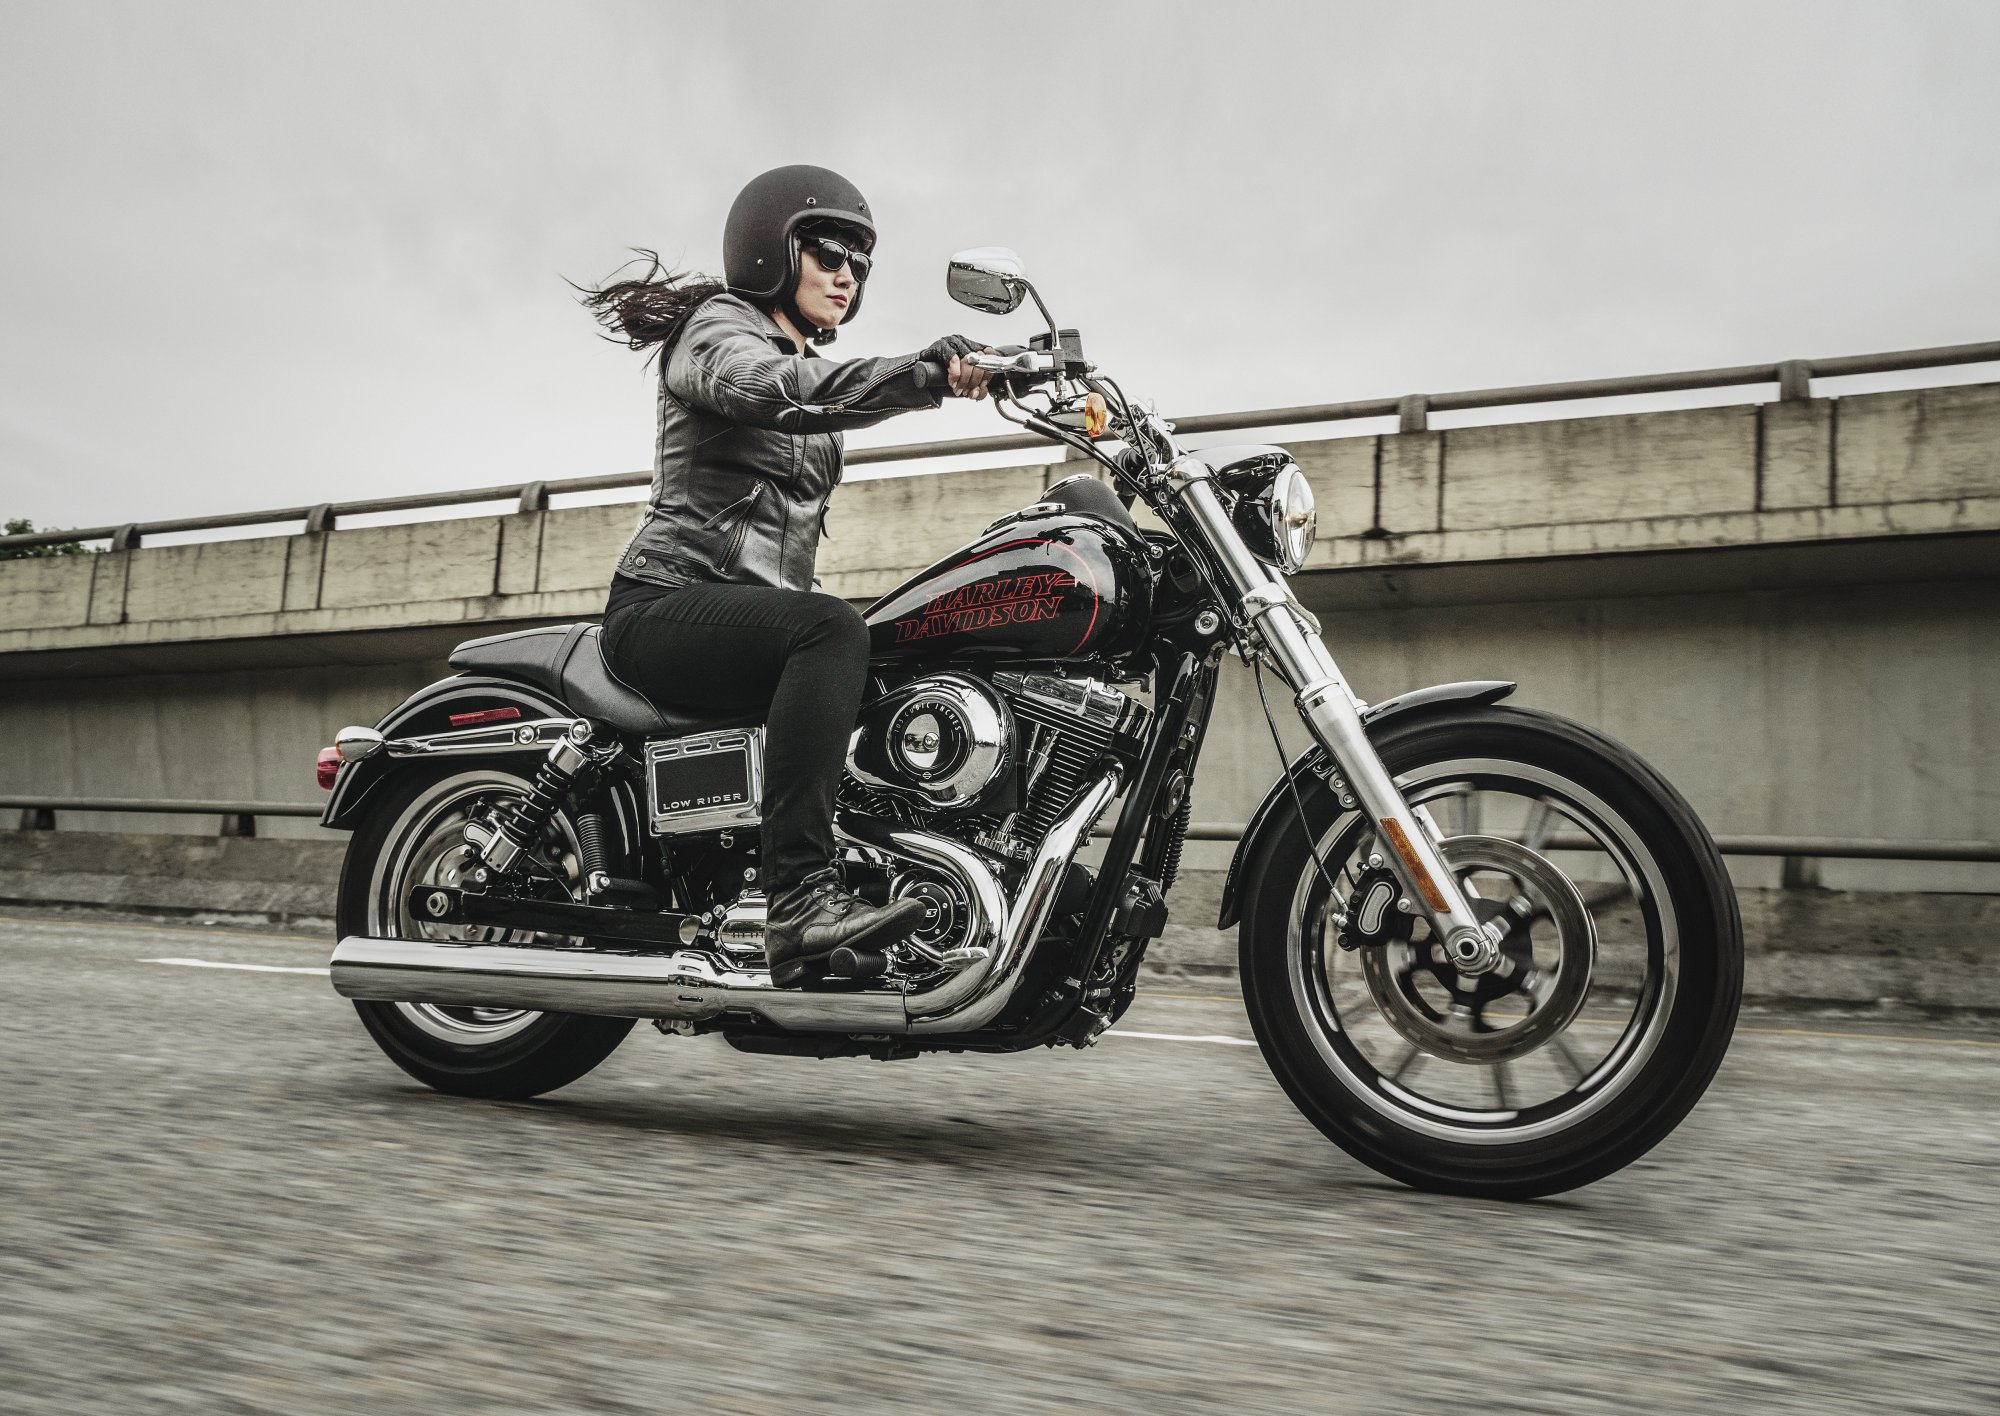 Harley Davidson Fat Boy Test